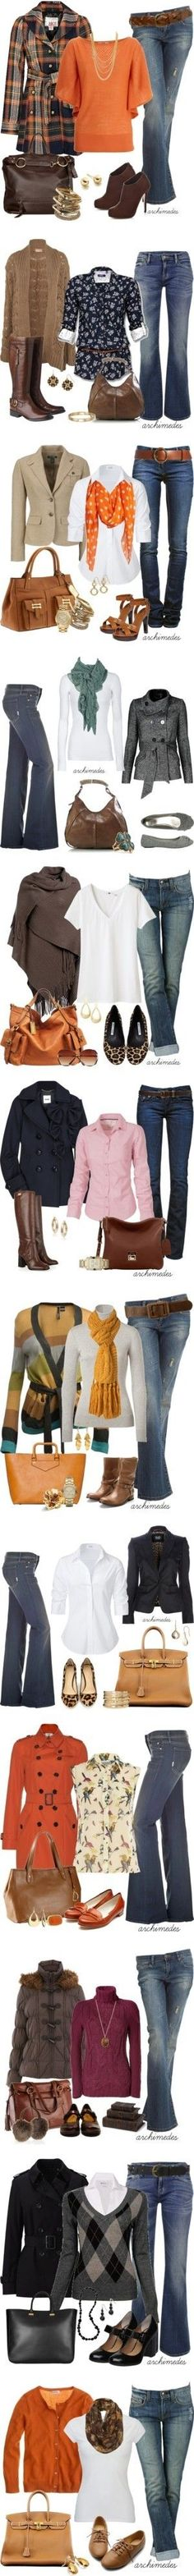 Style for over 35 ~ Cute outfits for fall!